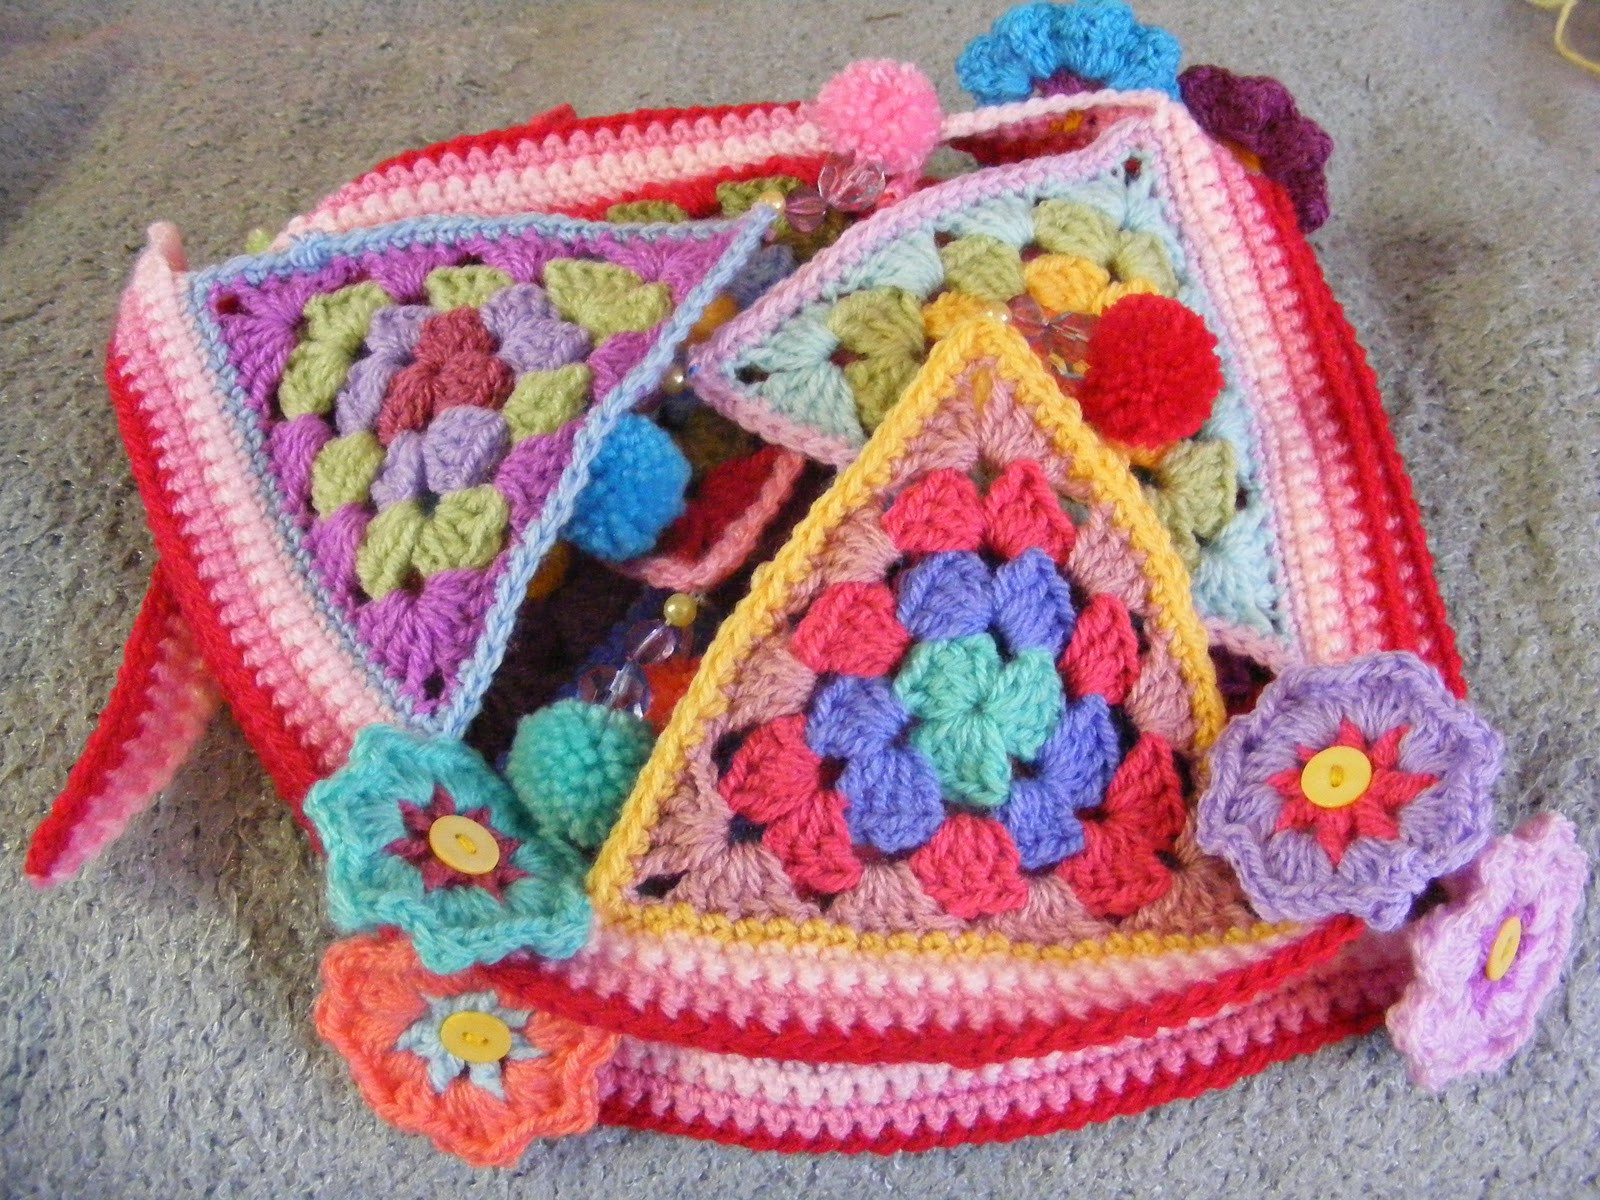 Awesome Pinkfluffywarrior Crochet Bunting Granny Triangles Crochet Triangle Of Amazing 48 Ideas Crochet Triangle